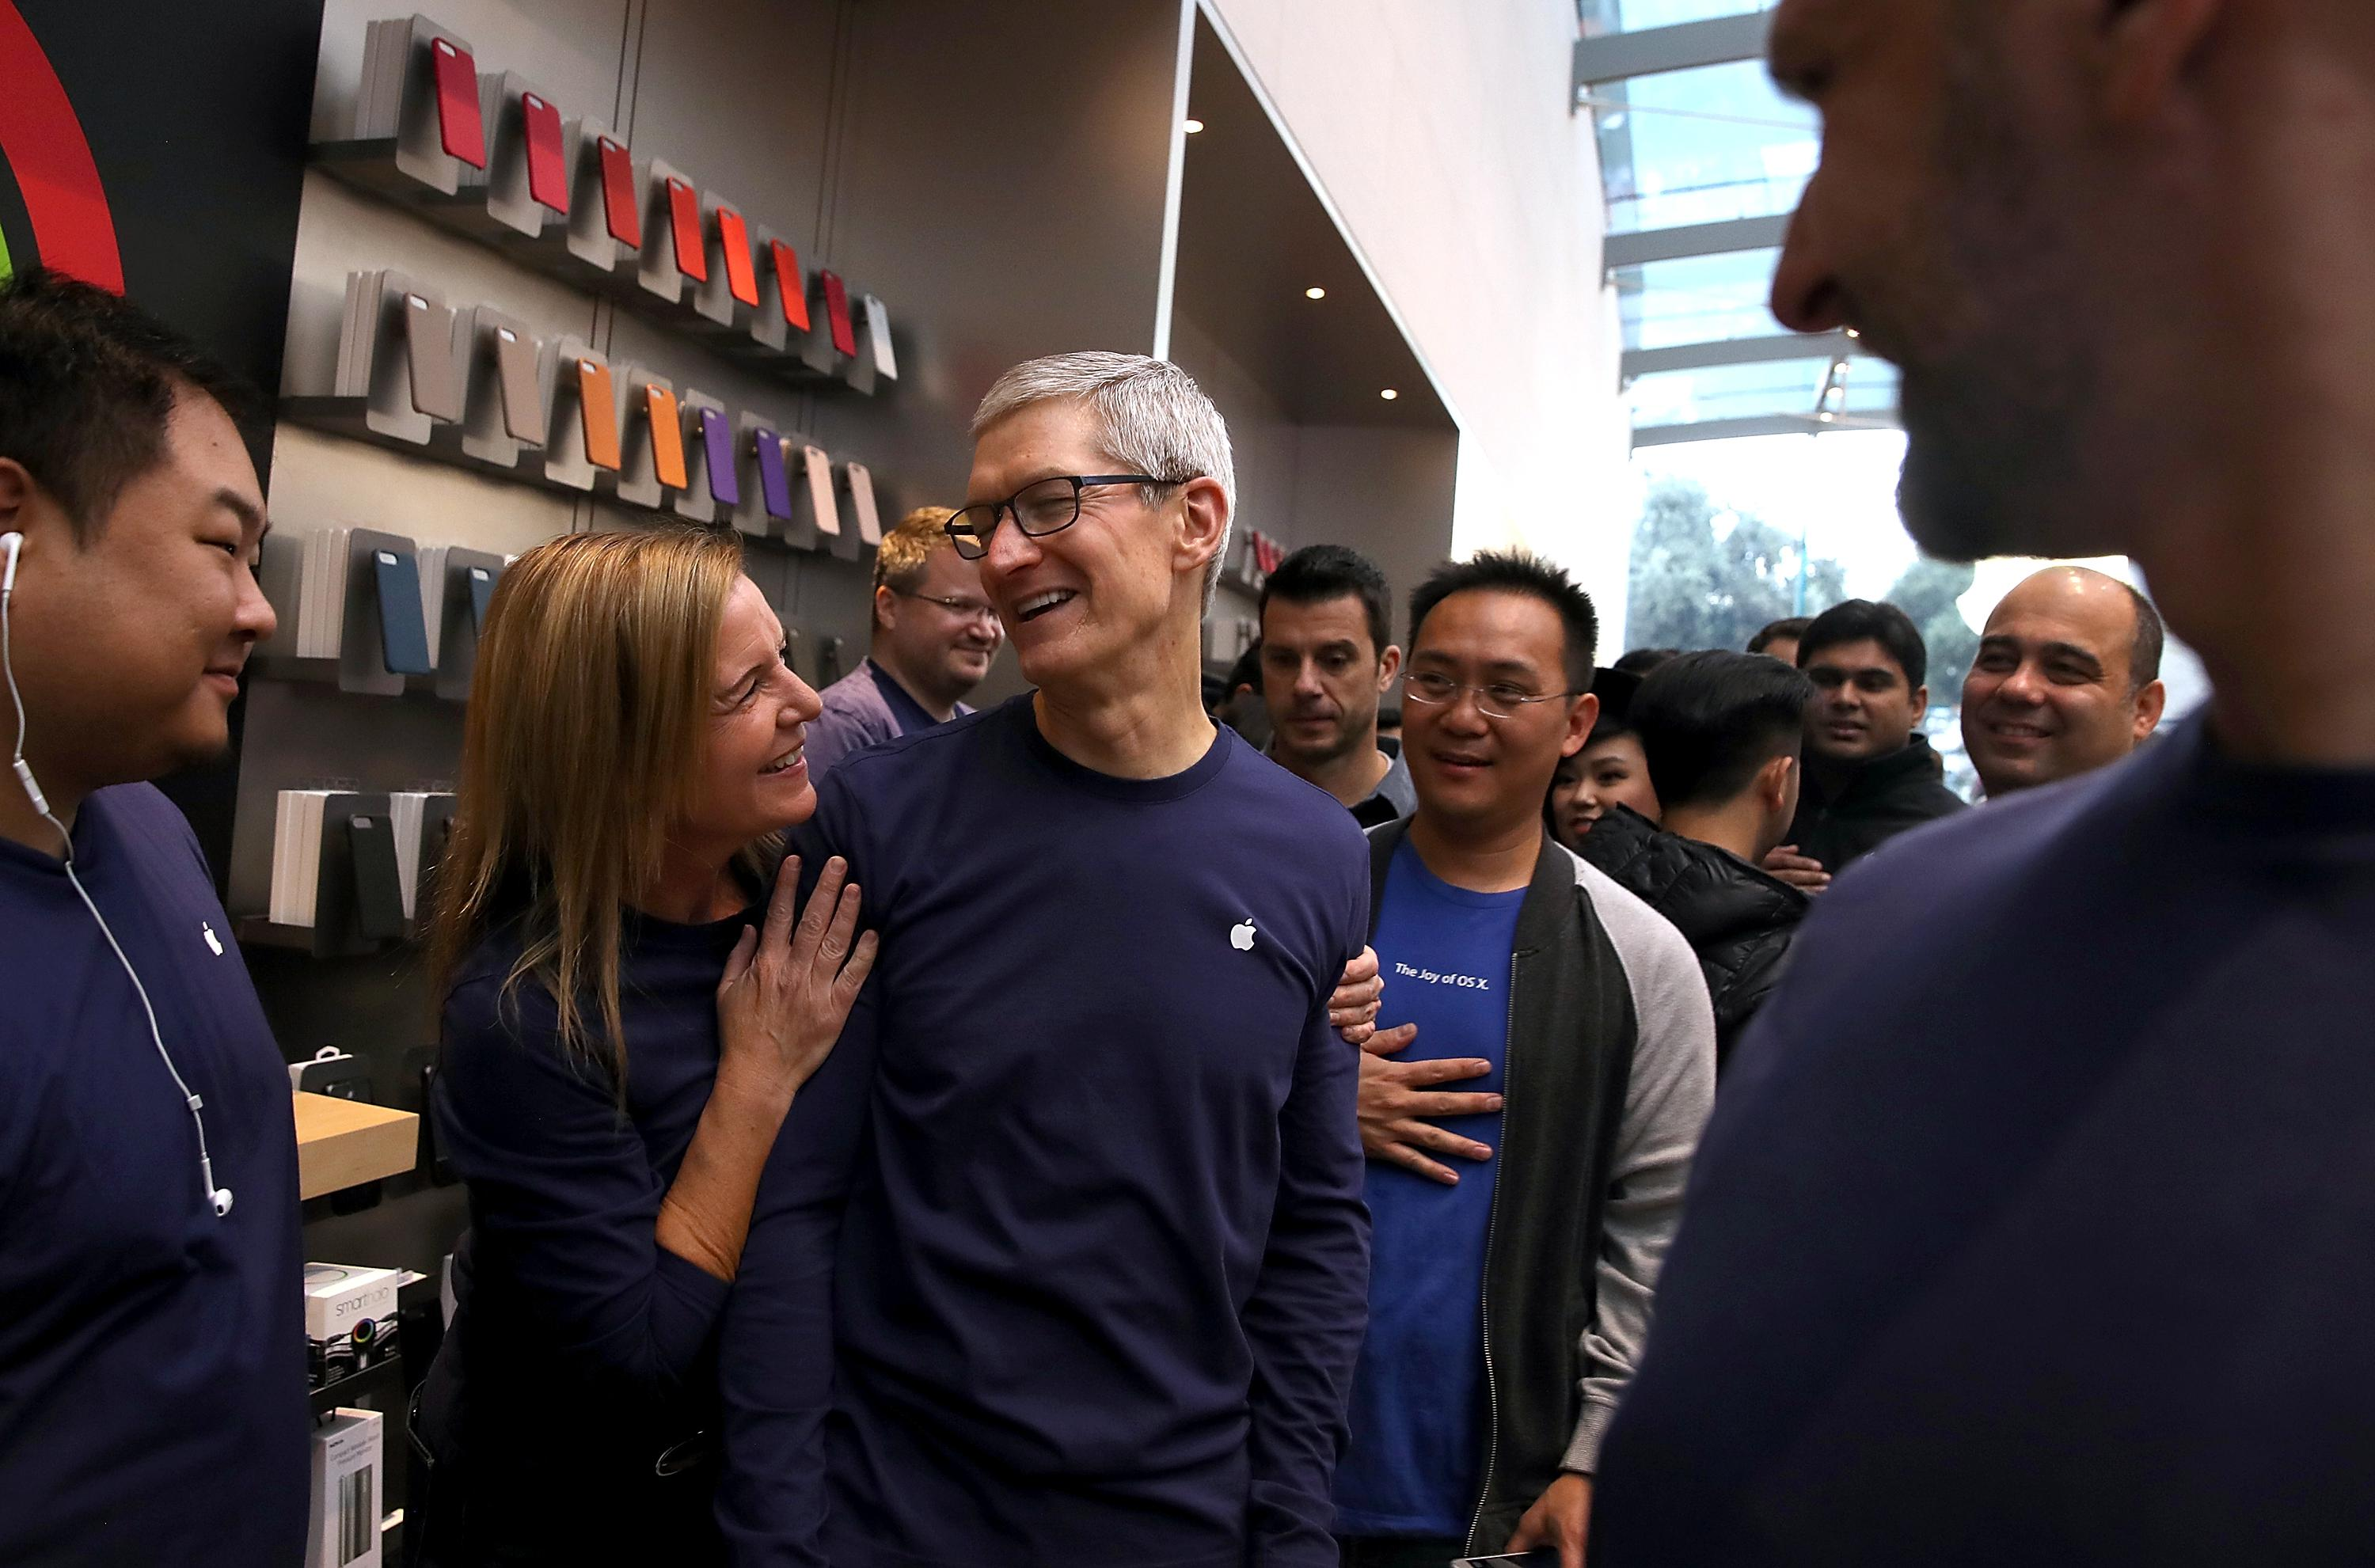 PALO ALTO, CA - NOVEMBER 03:  Apple CEO Tim Cook greets customers as the new iPhone X goes on sale at an Apple Store on November 3, 2017 in Palo Alto, California. The highly anticipated iPhone X went on sale around the world today.  (Photo by Justin Sullivan/Getty Images)